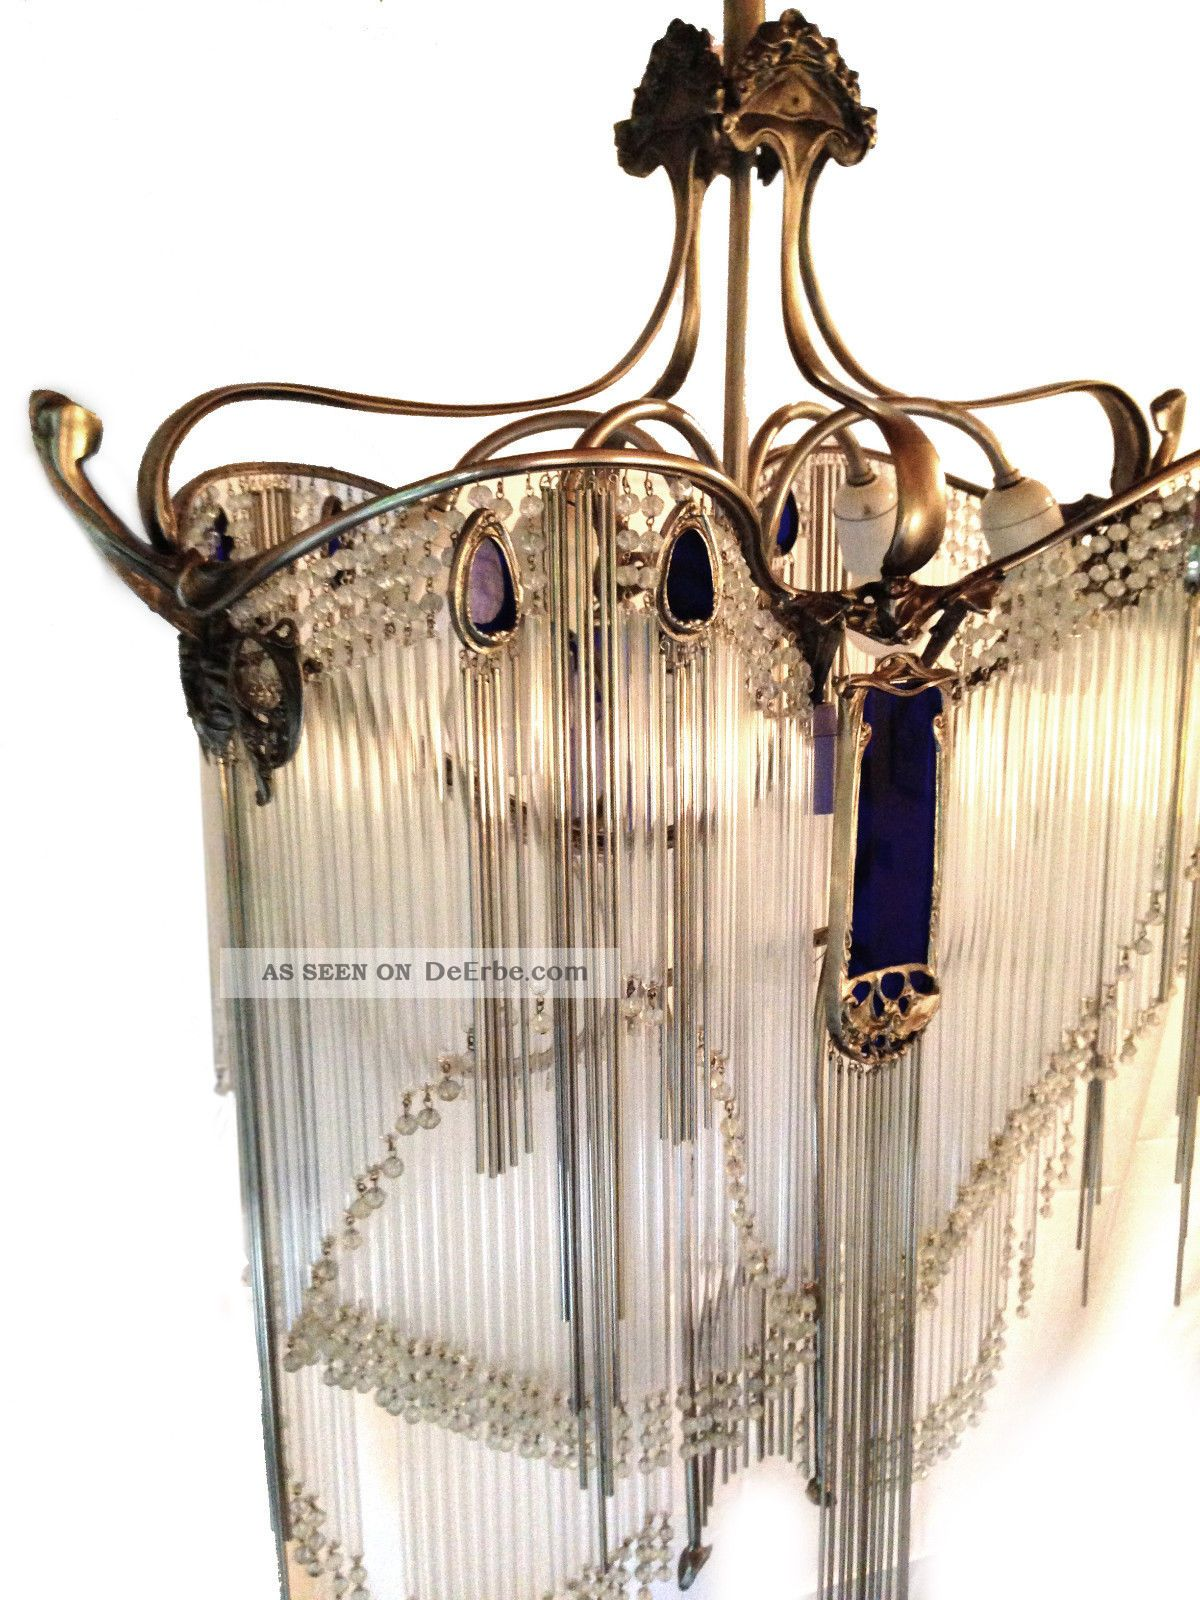 hector guimard l ster luster lustre jugendstil art nouveau chandelier 1910 paris. Black Bedroom Furniture Sets. Home Design Ideas